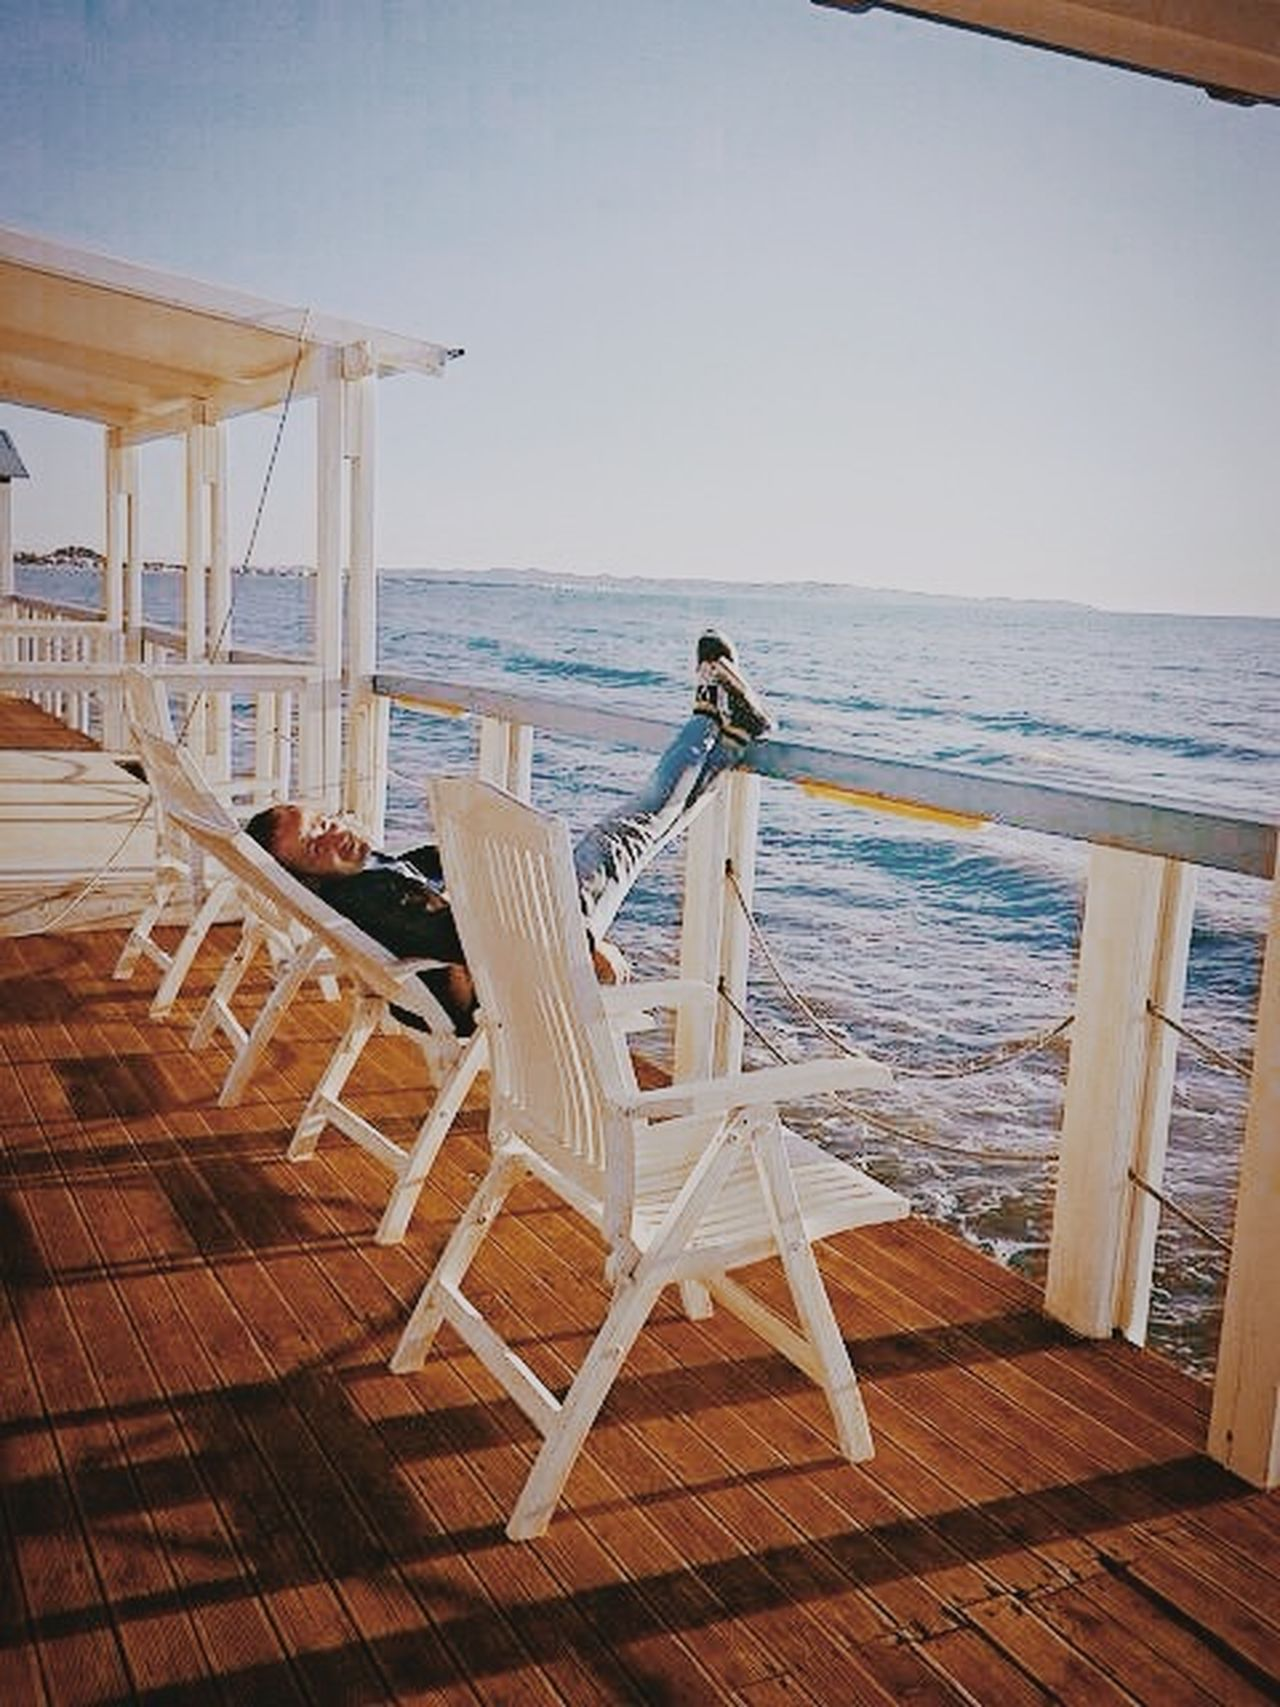 Chilling EyeEm Nature Lover Nature Durres Albania The Places I've Been Today Beautiful Sea Beach Seaside